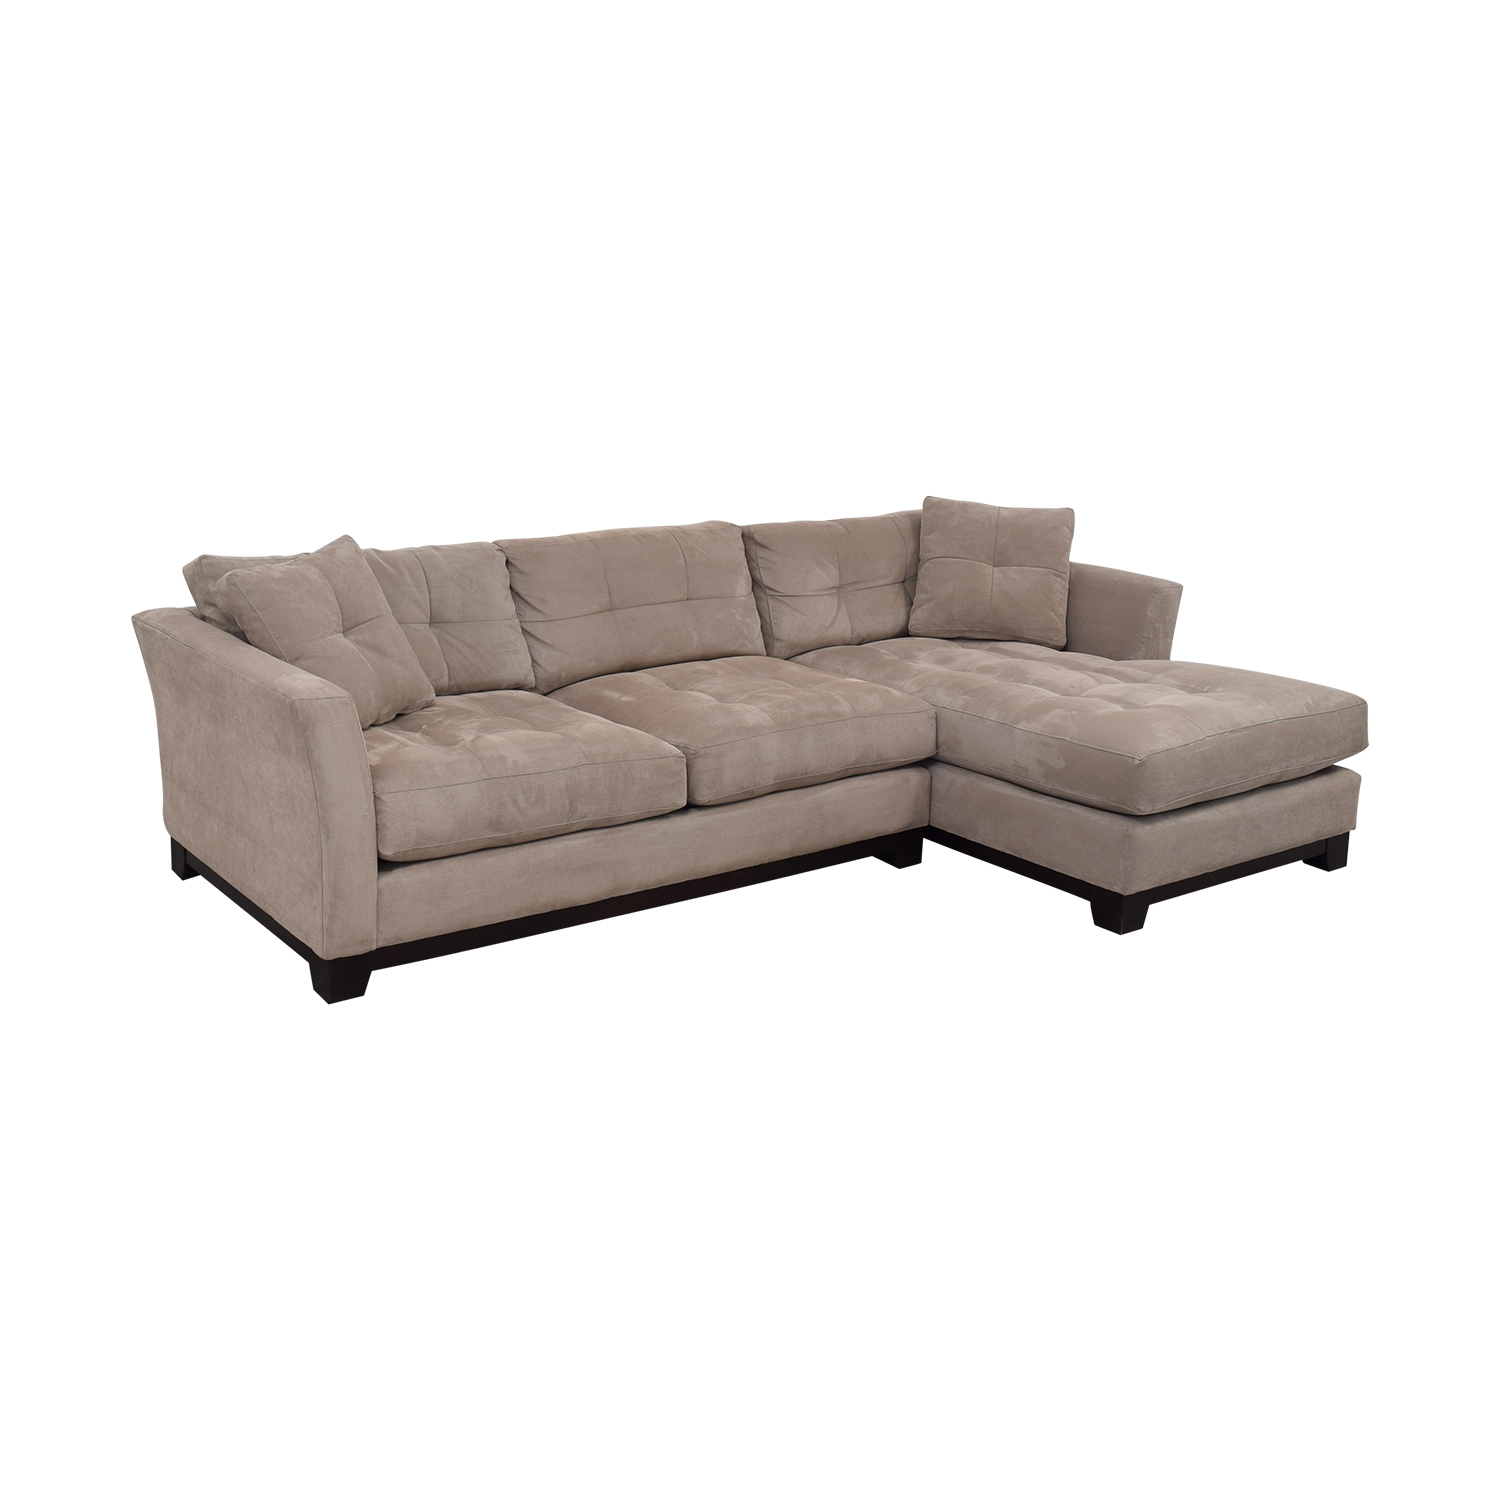 Macy's Macy's Elliot Cindy Crawford Grey Tufted Chaise Sectional used